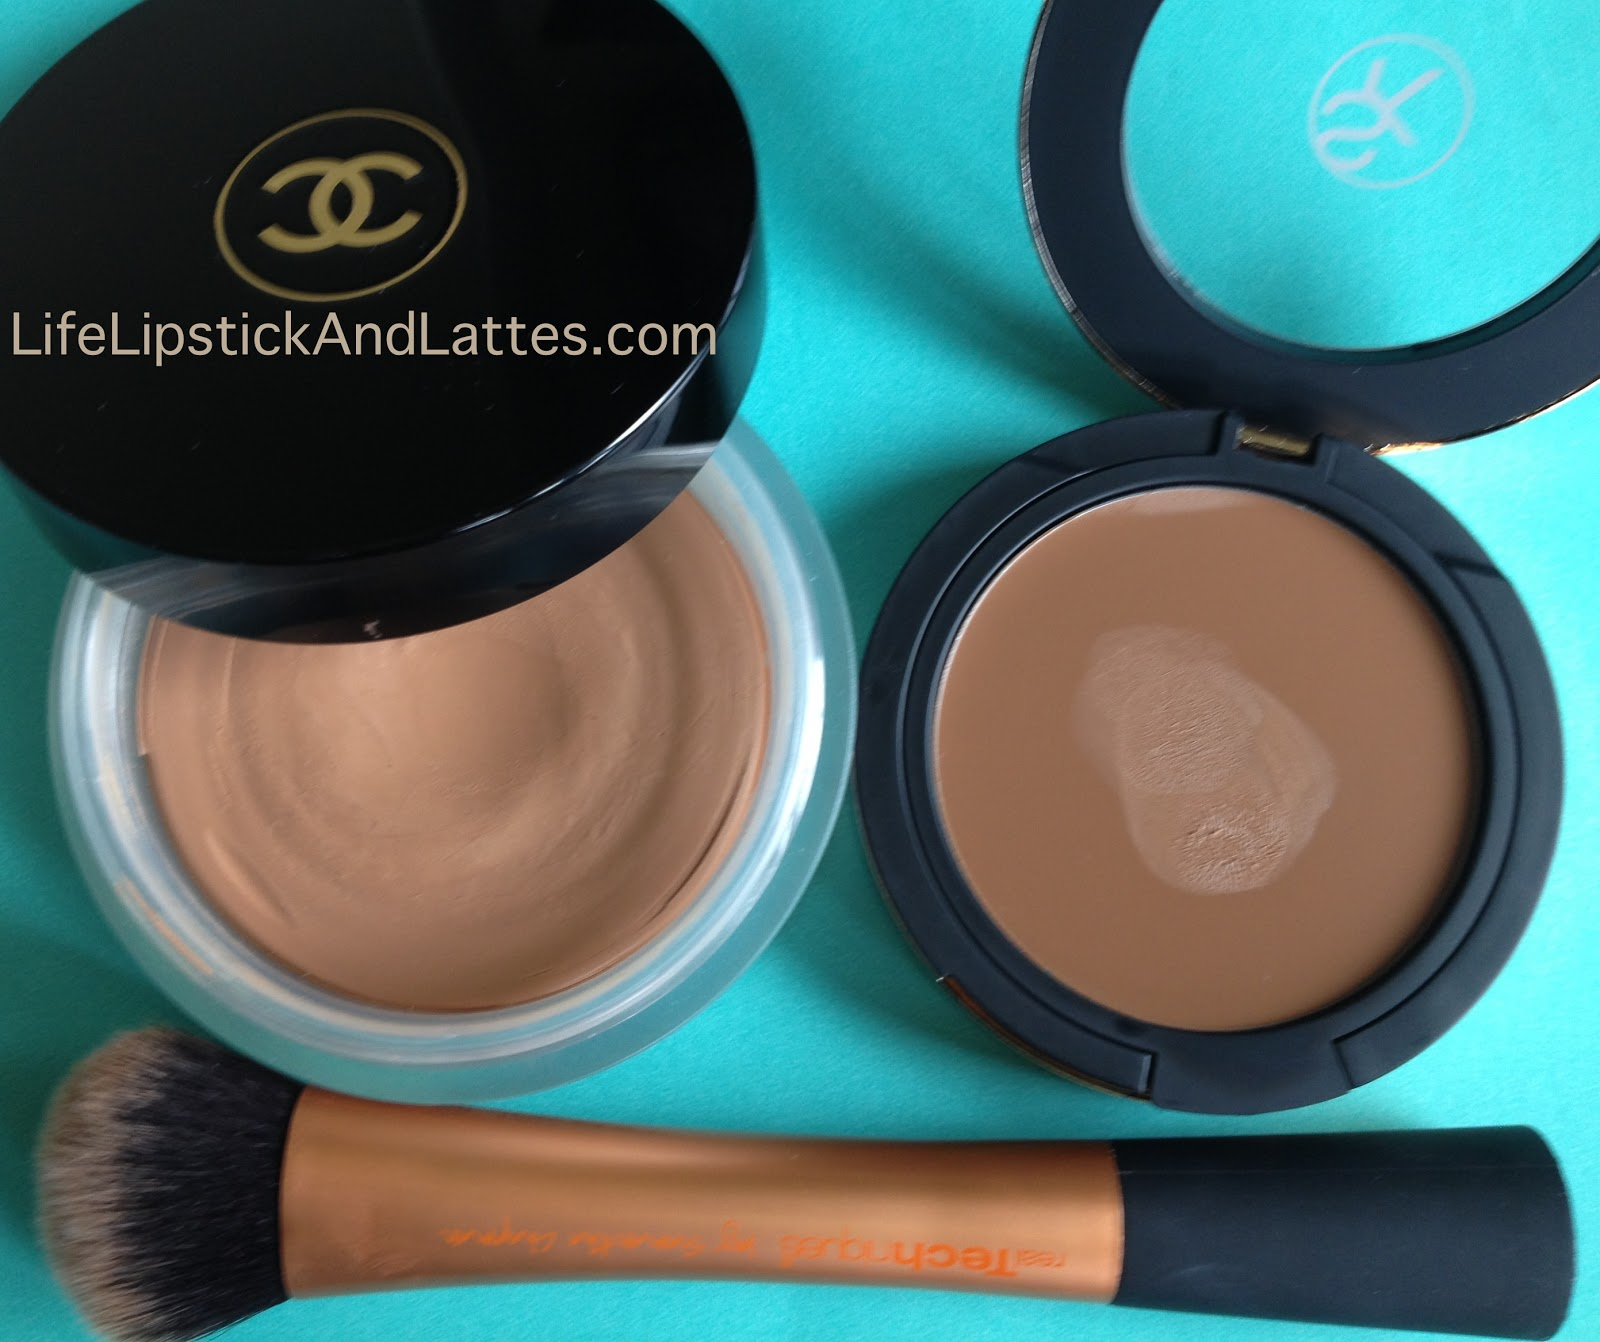 life lipstick and lattes splurge or save chanel vs sonia kashuk creme bronzers. Black Bedroom Furniture Sets. Home Design Ideas